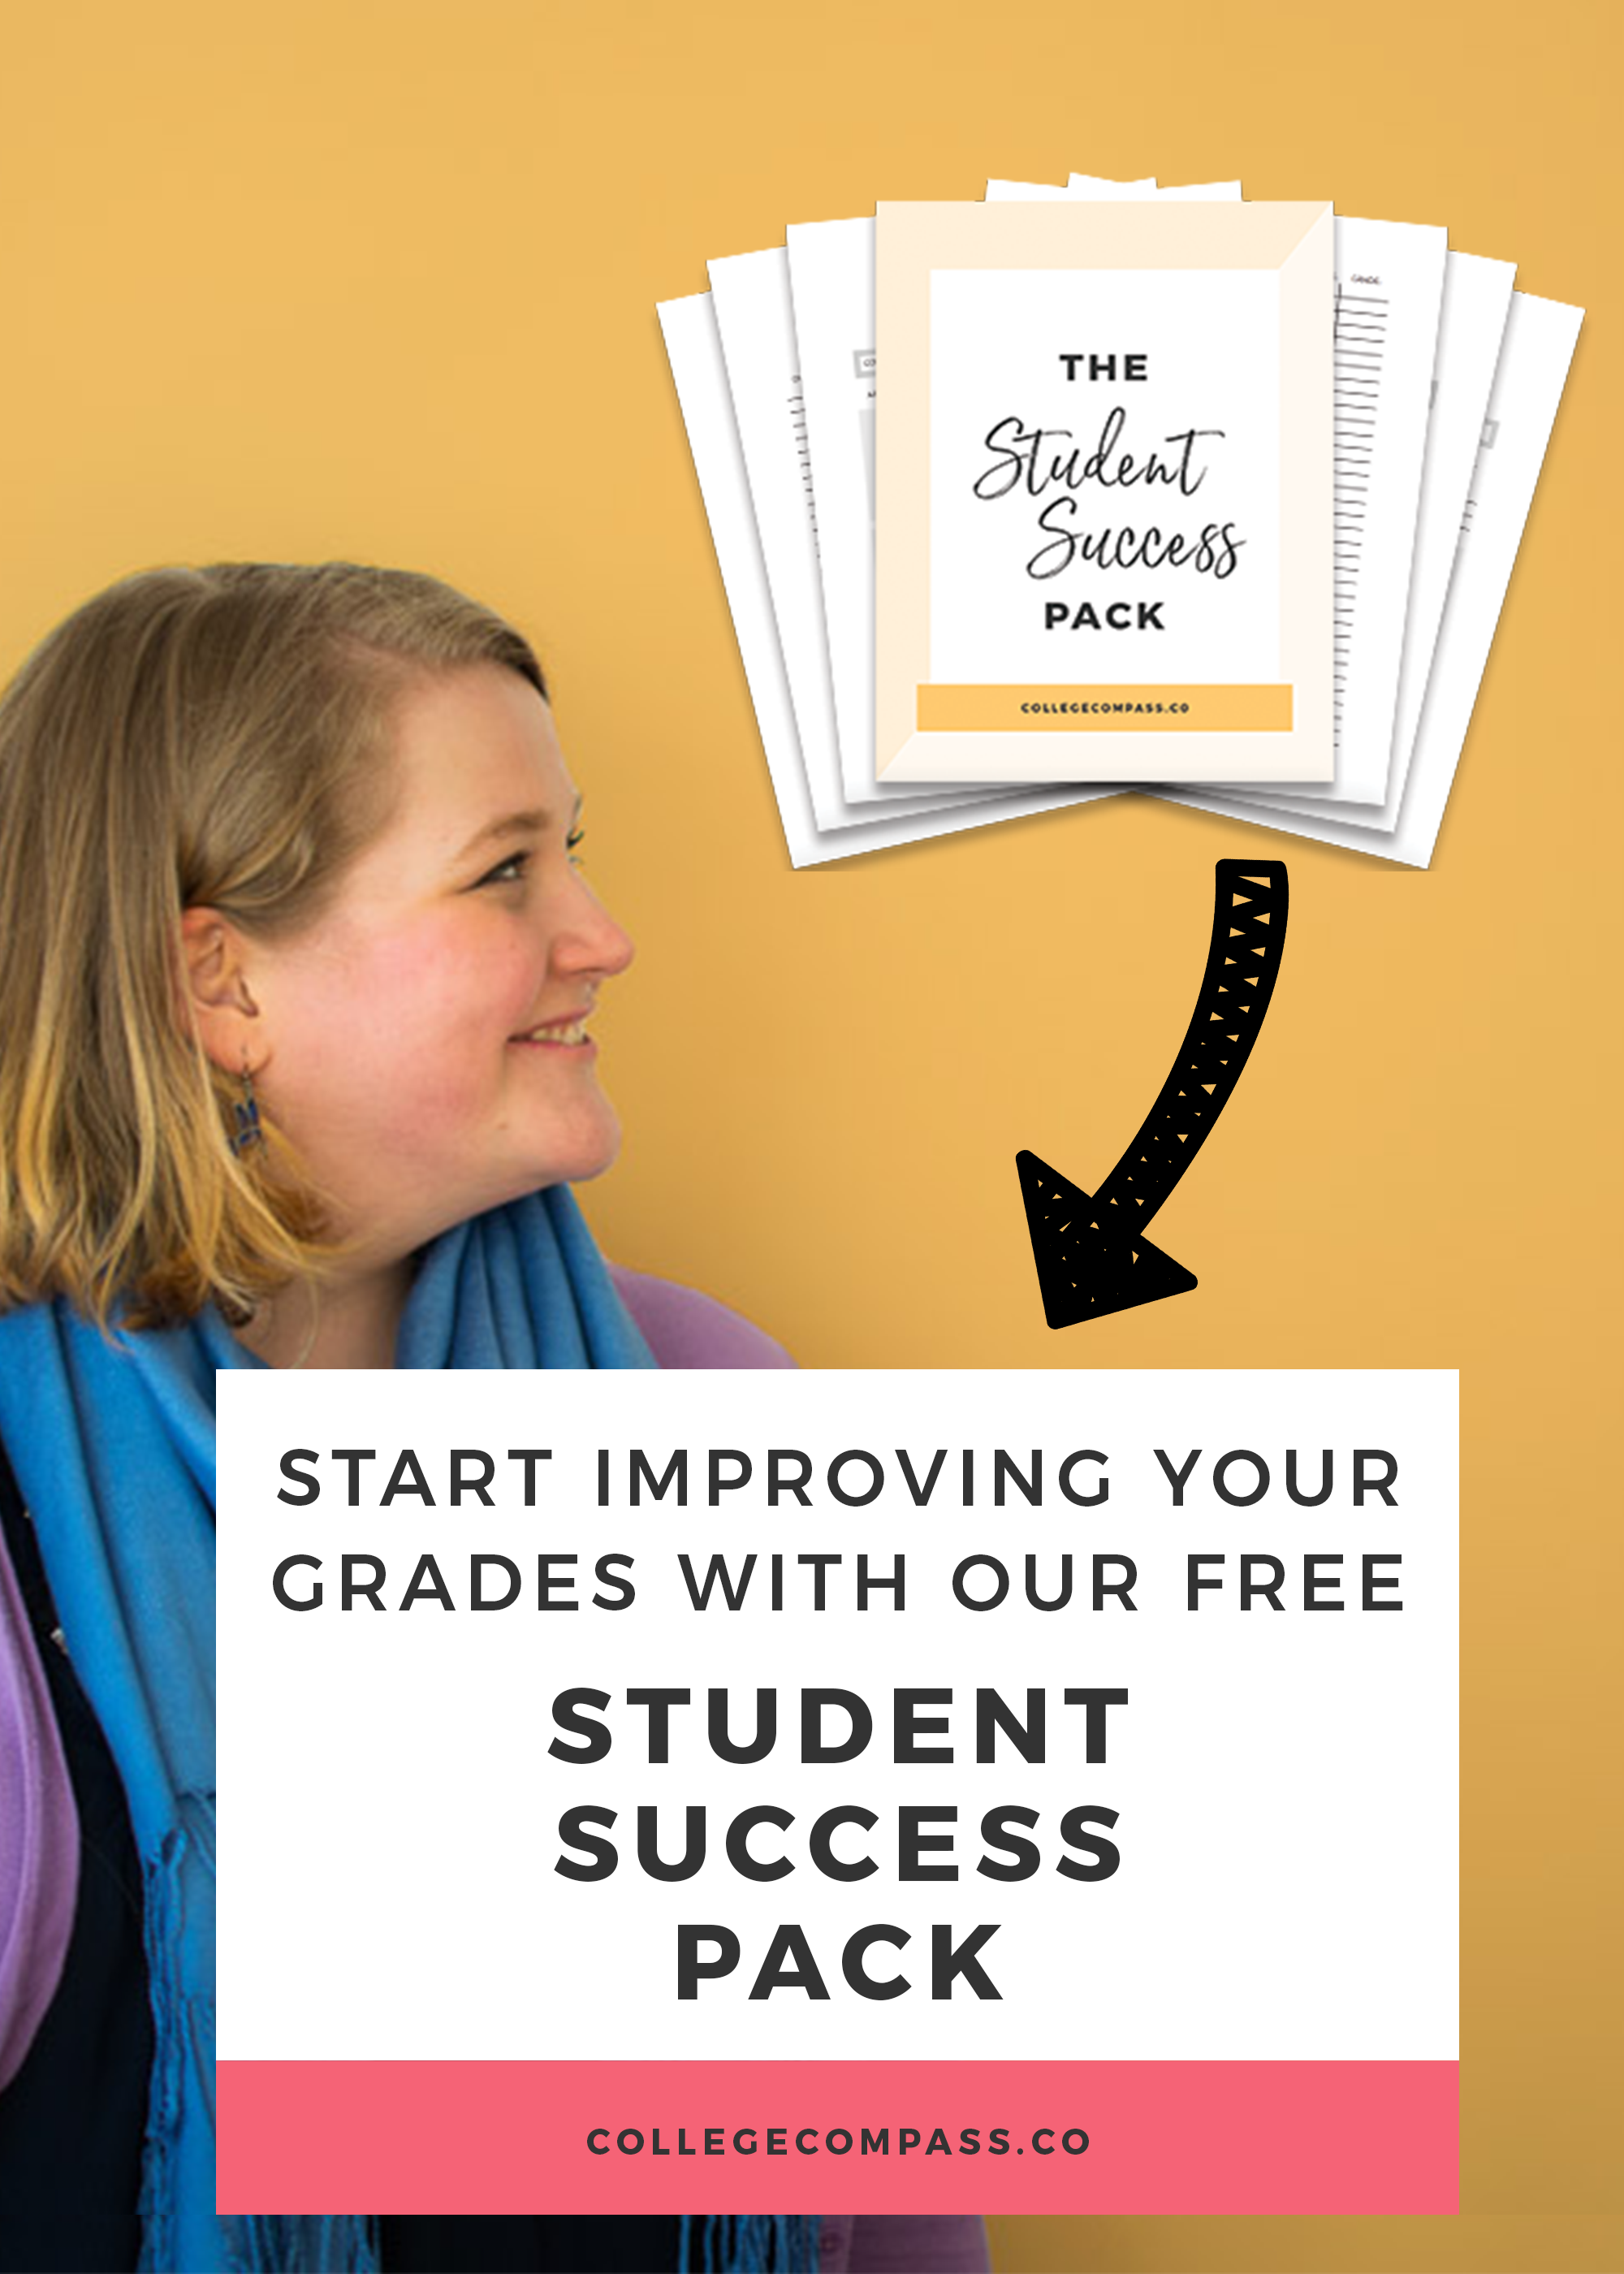 Download the Student Success Pack!